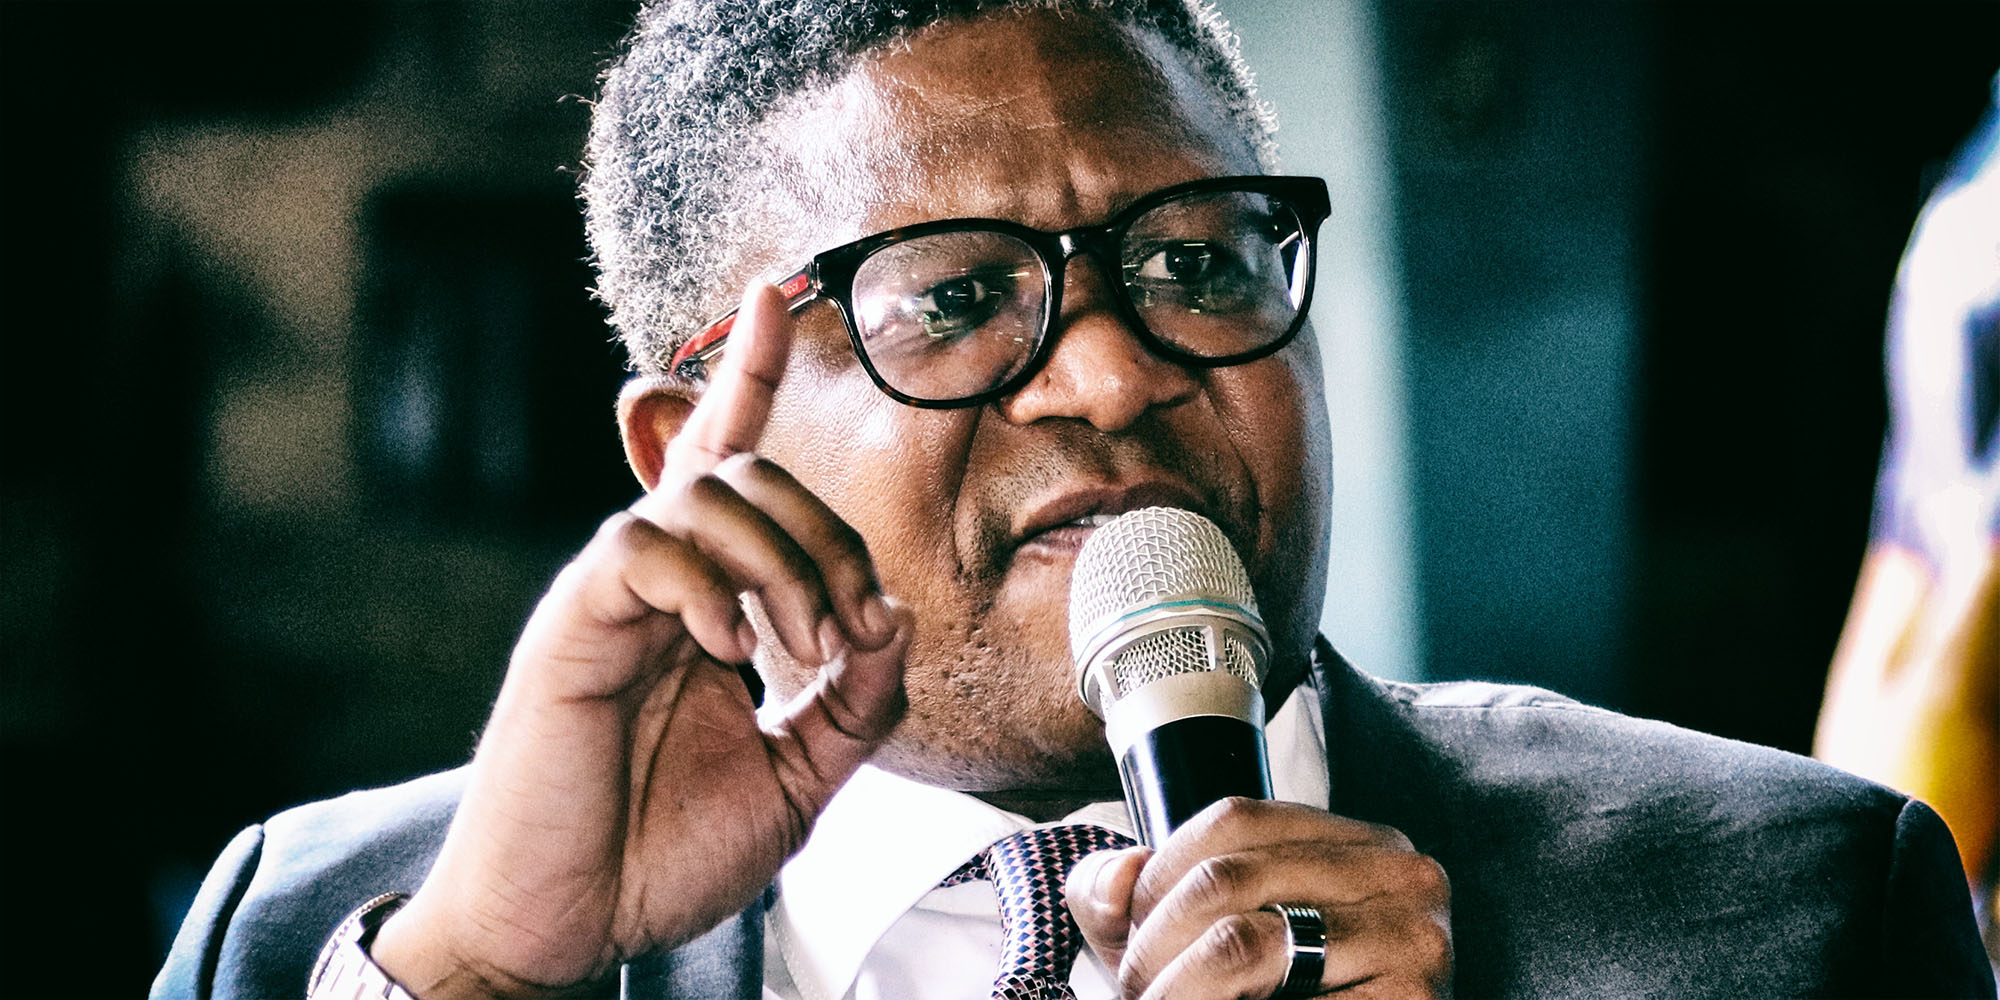 Mbalula defends appointment of Prasa administrator as committee grills him in Parliament - Daily Maverick